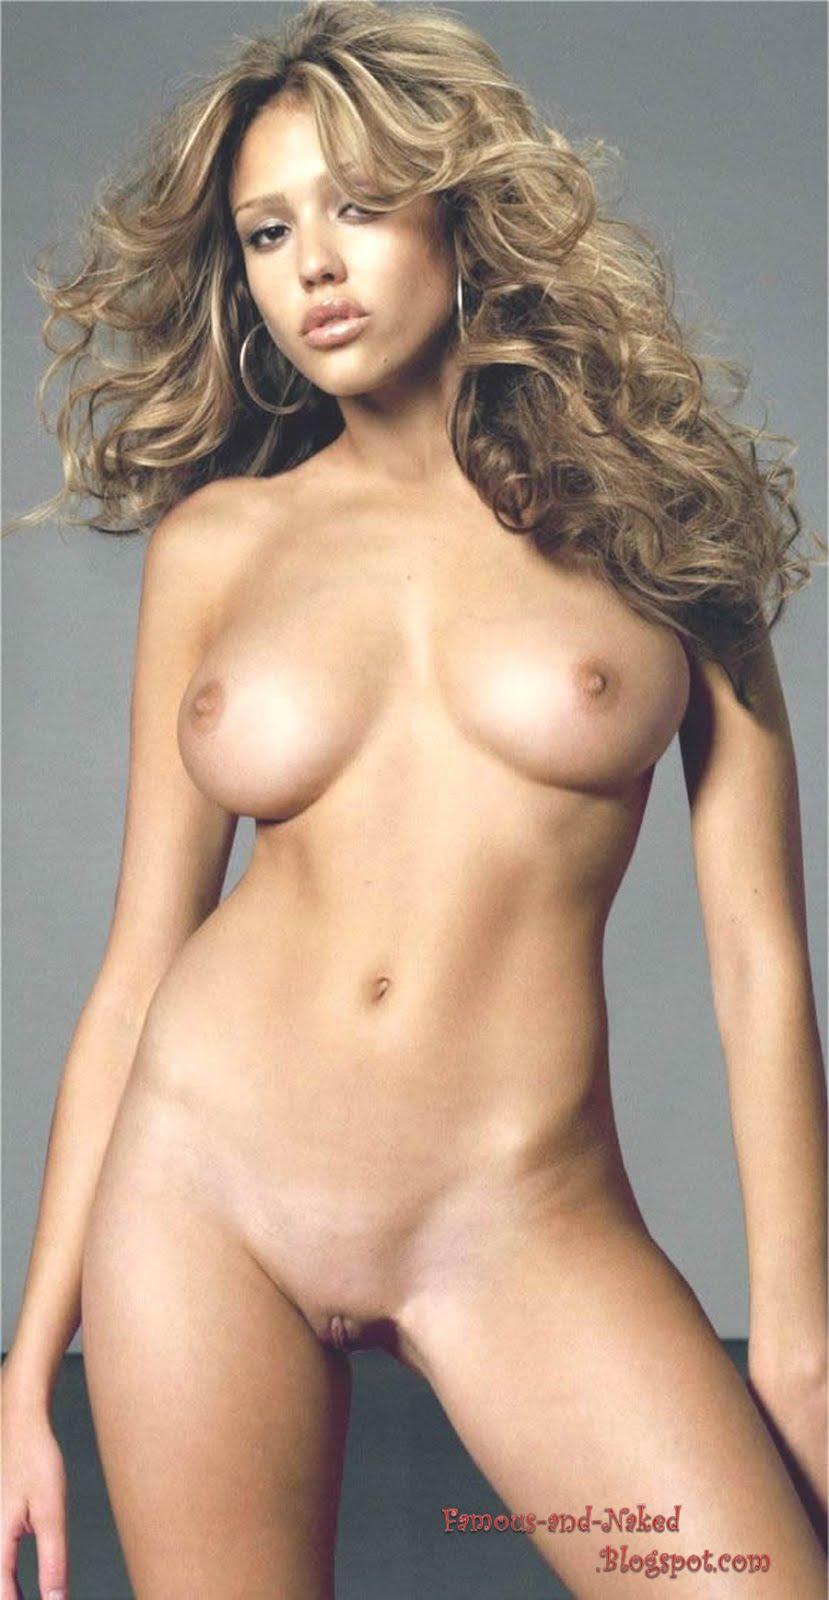 Jessica alba blonde and naked were